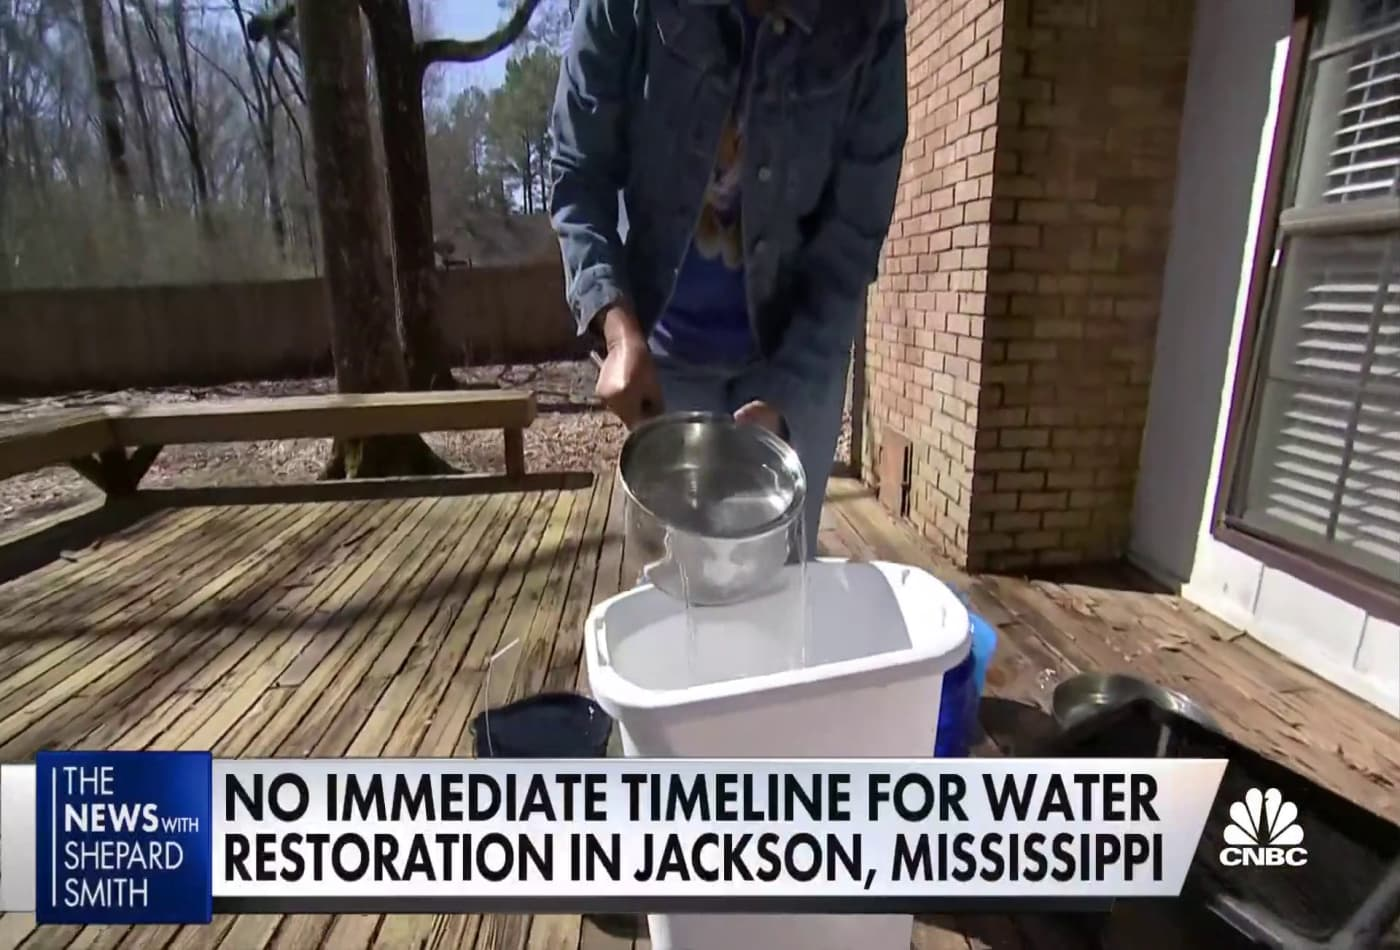 Mississippi's largest city doesn't have running water, or a timeline for when it will be fixed